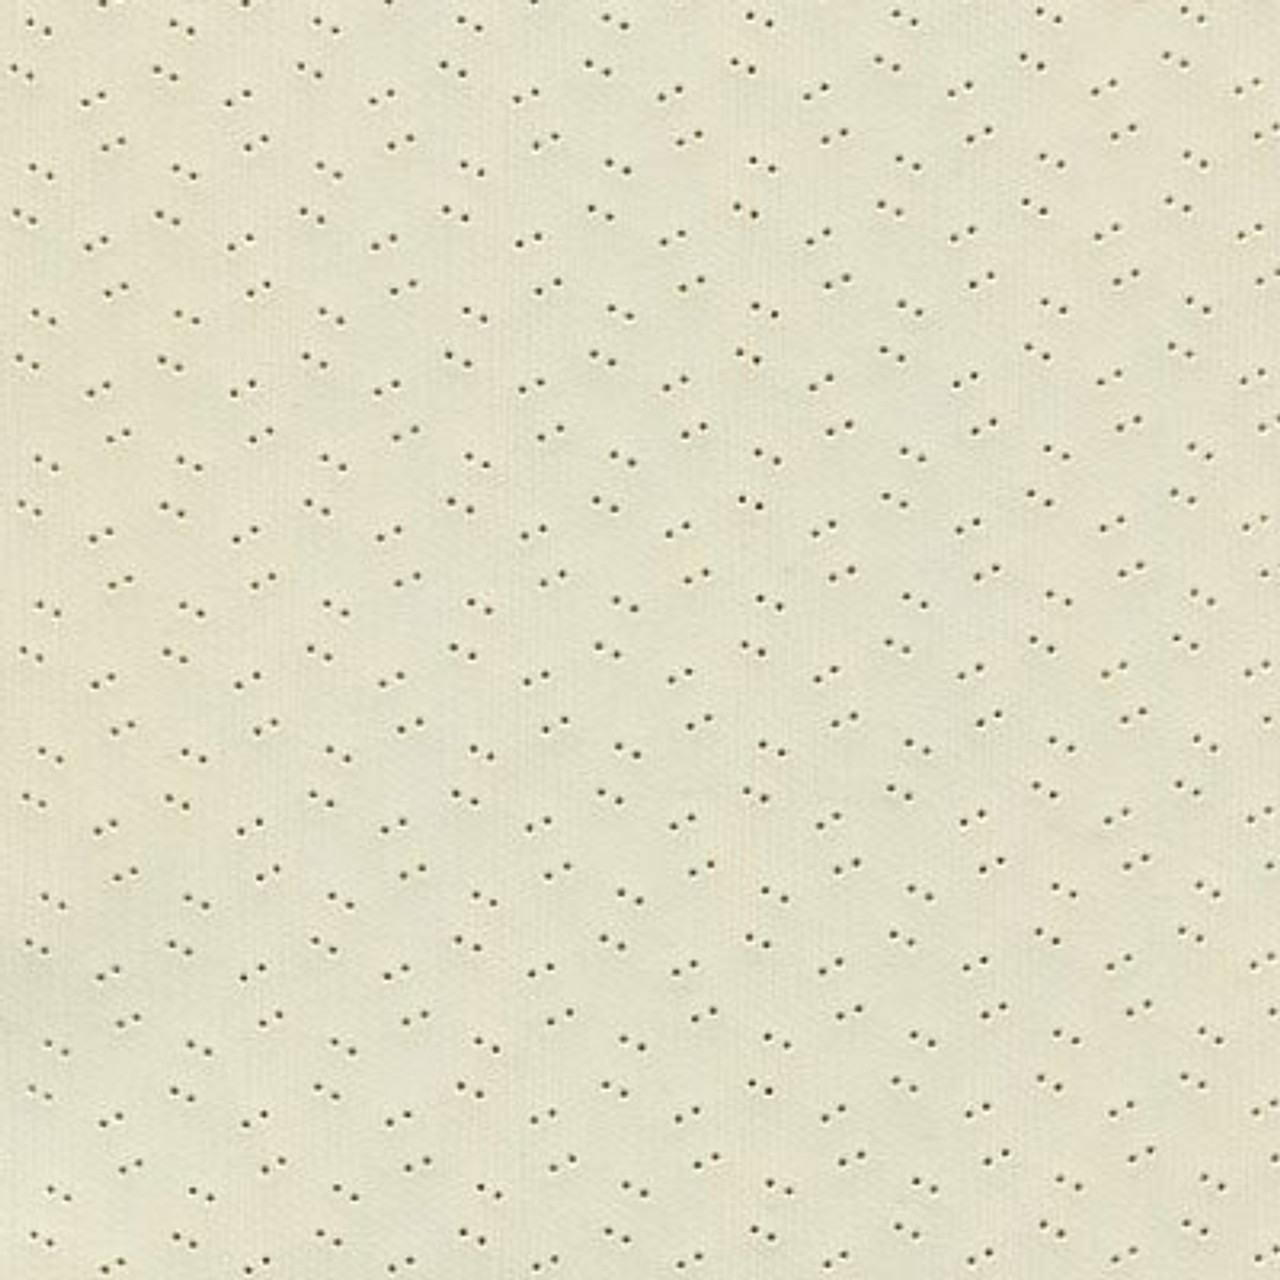 "Enduratex Vinyl Headliner CLASSIC PREMIER PERFORATED 1181 White 54"" - Sold by Yard"